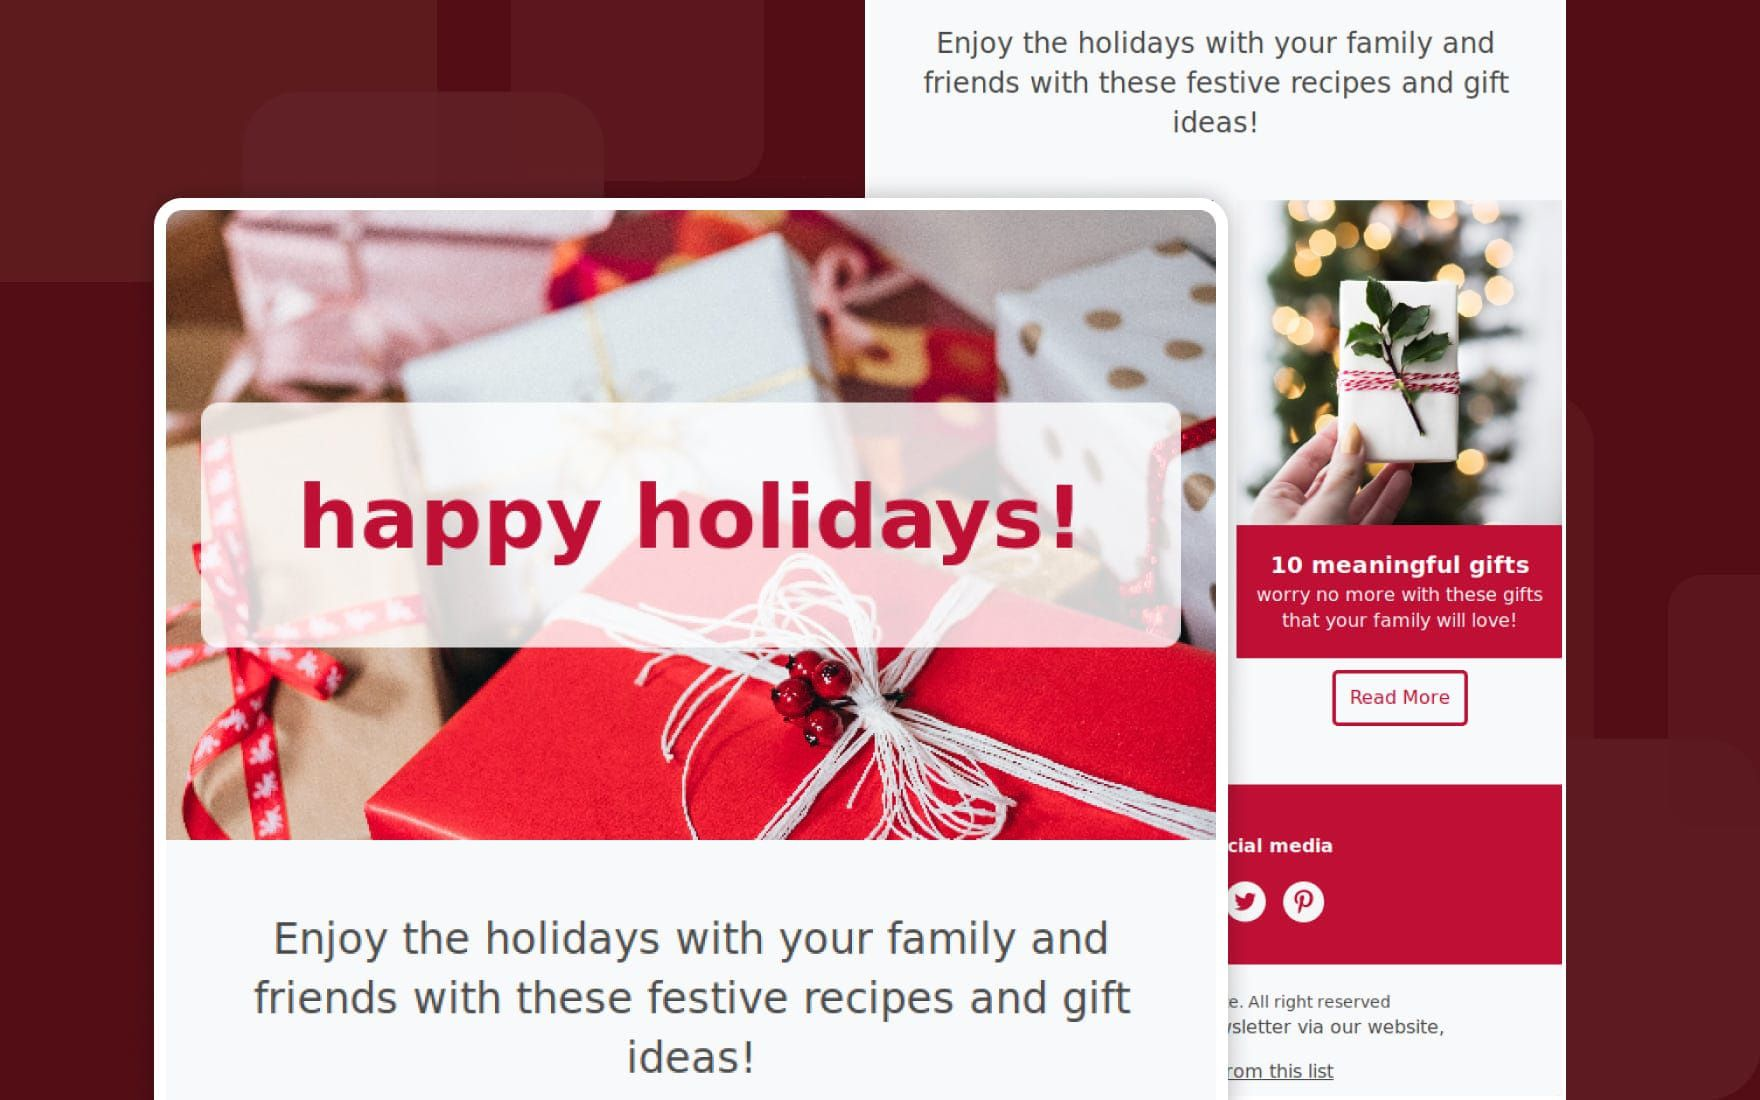 004 Surprising Holiday E Mail Template Image  Email Outlook Christma For MessageFull